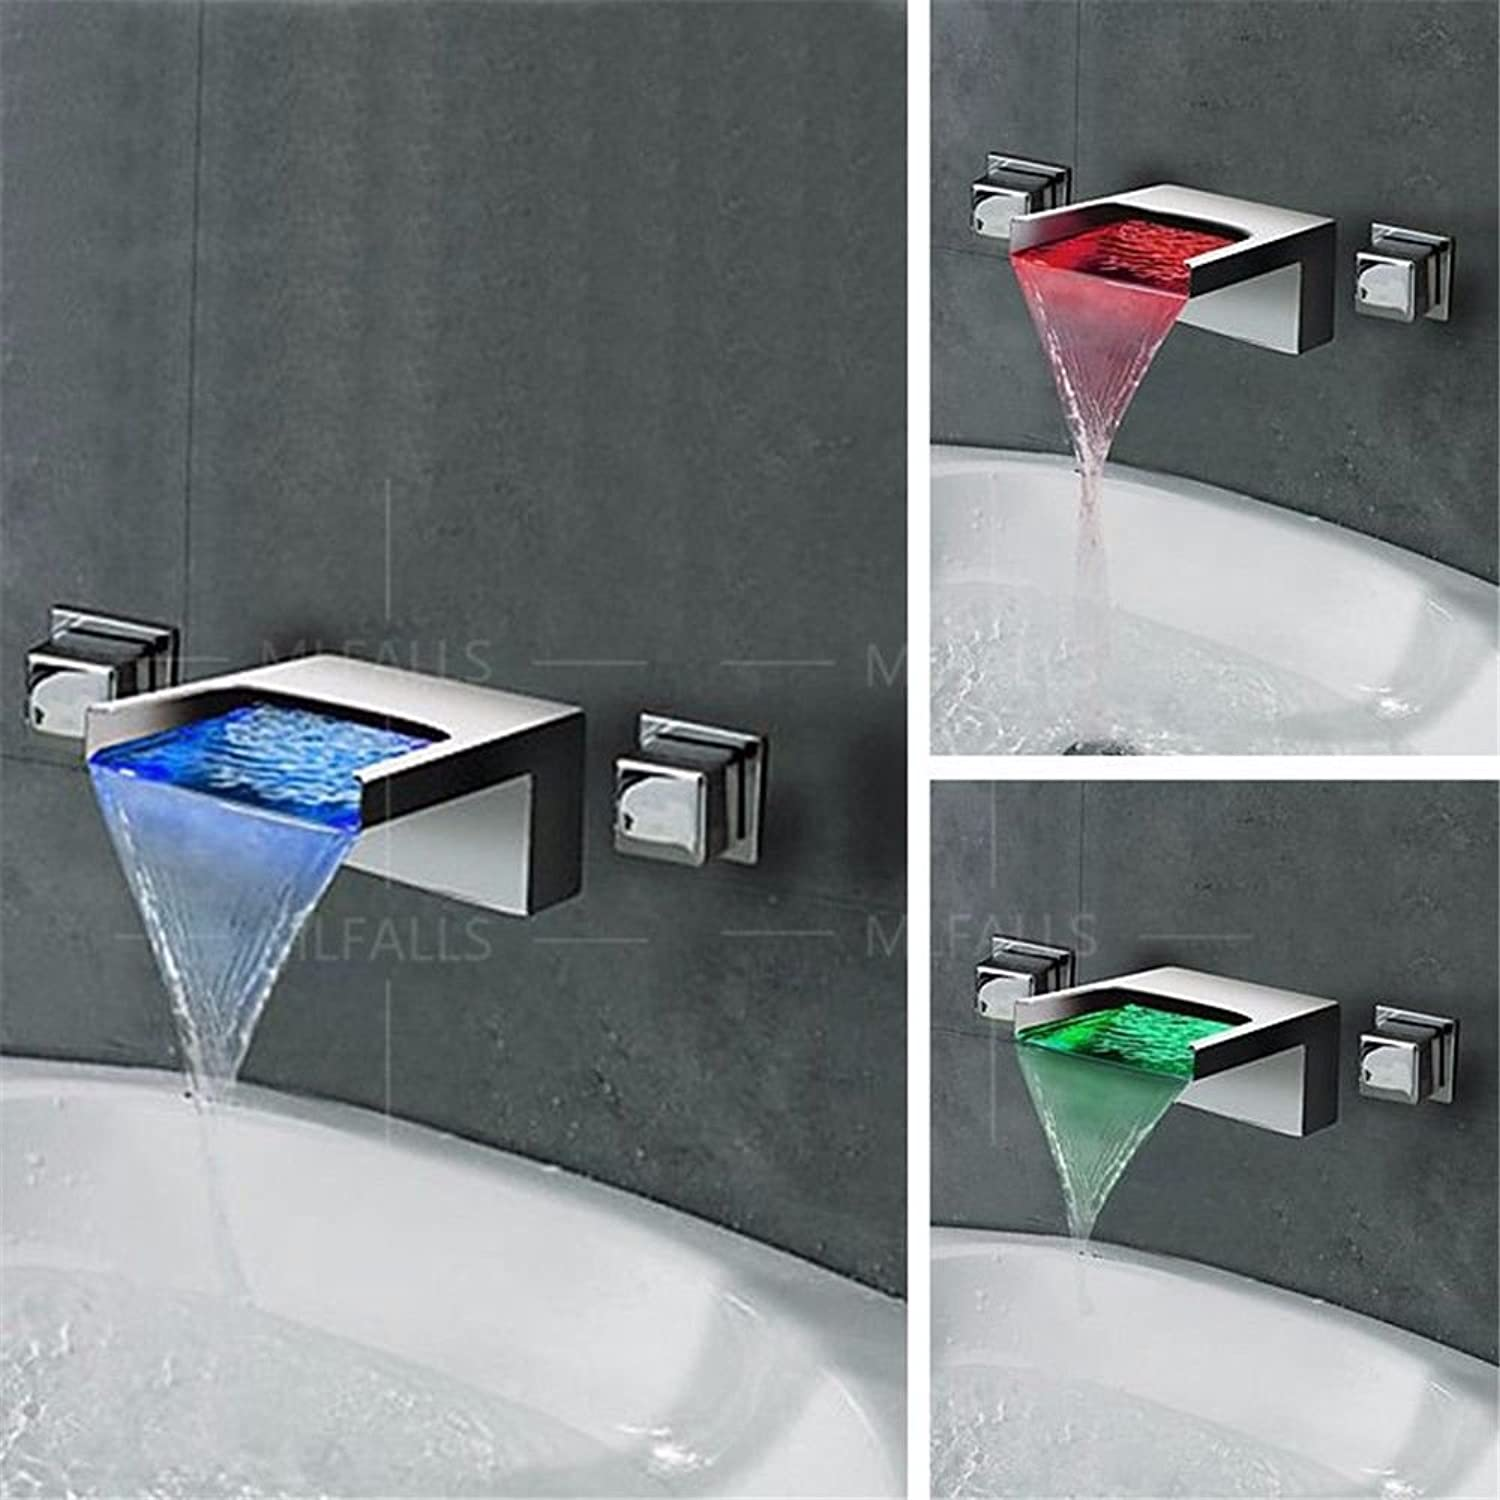 Lalaky Taps Faucet Kitchen Mixer Sink Waterfall Bathroom Mixer Basin Mixer Tap for Kitchen Bathroom and Washroom Led Waterfall Hot and Cold Double Handle Into The Wall Tail Single